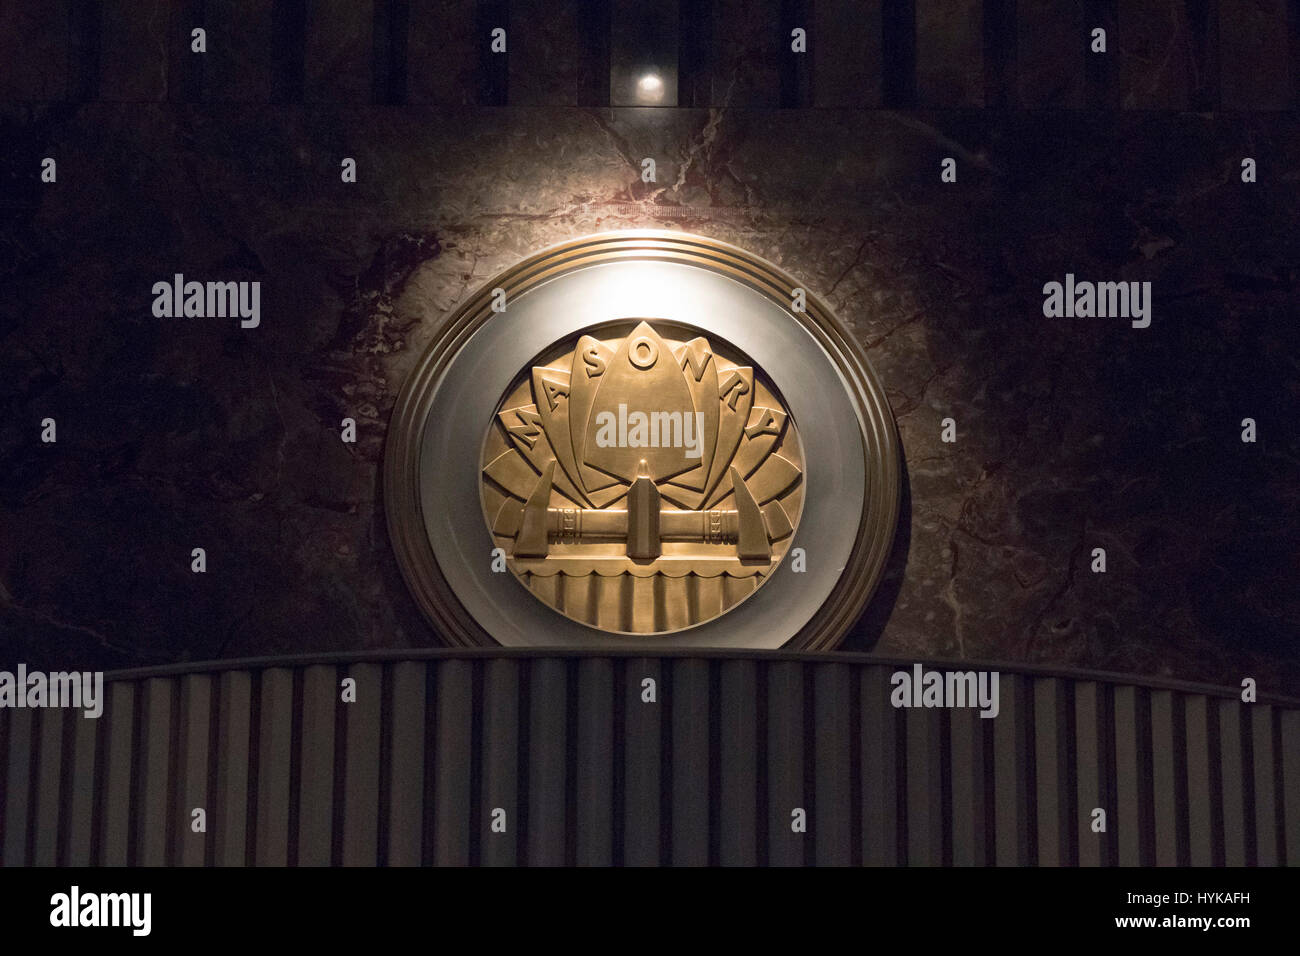 Mauerwerk-Emblem, lobby, Empire State Building, Manhattan, New York City, USA Stockbild